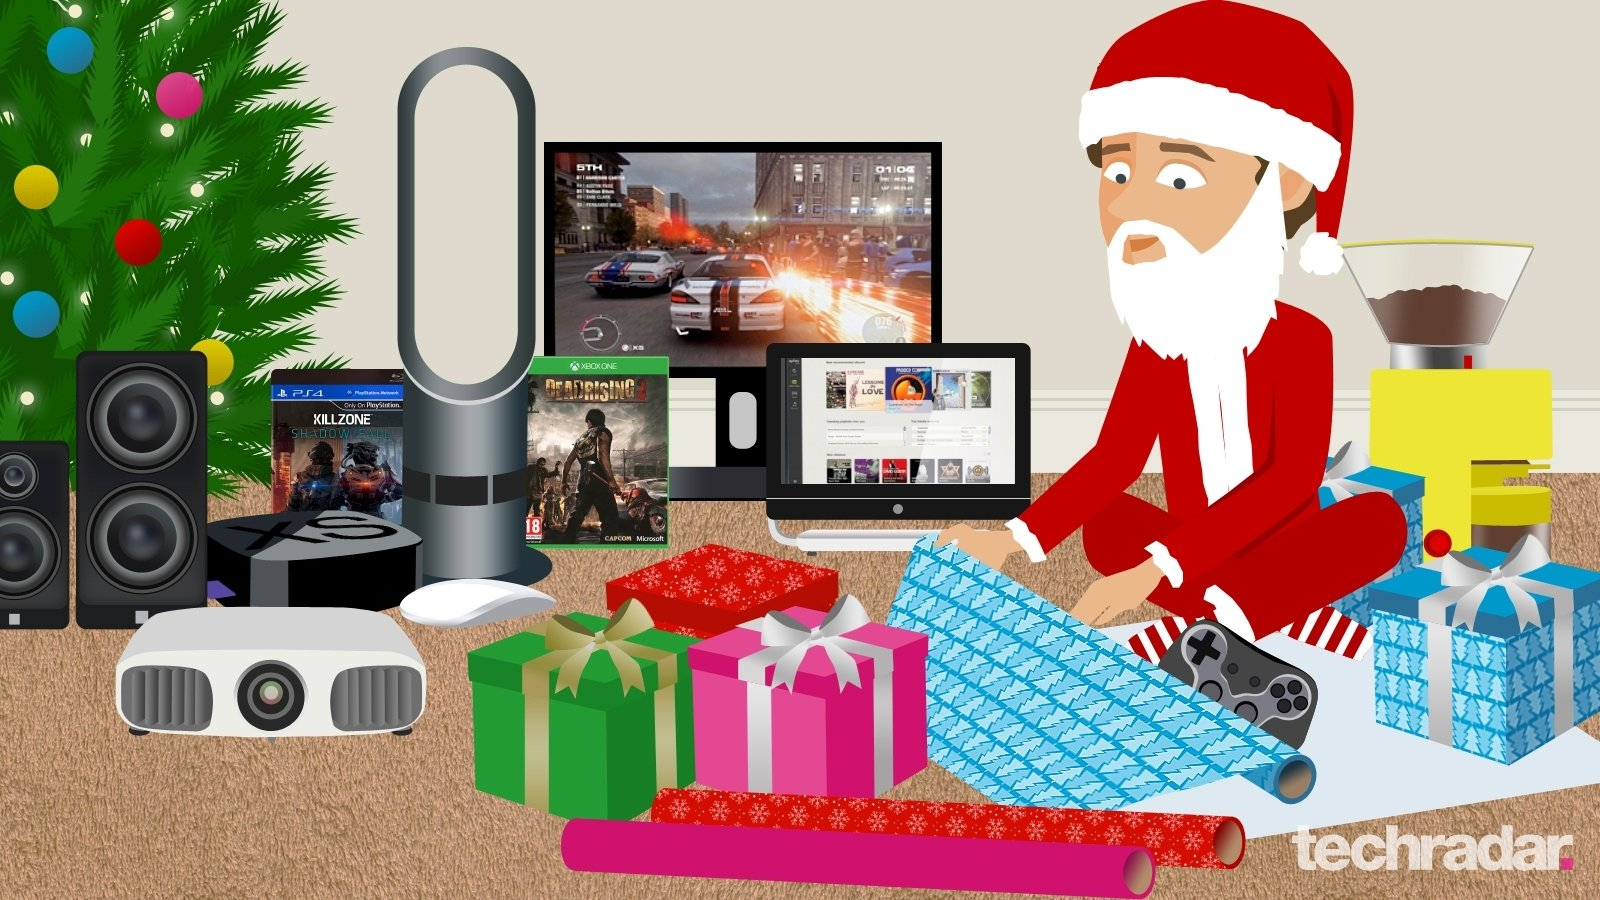 10 Spectacular Top Christmas Gift Ideas 2013 christmas gift ideas top christmas gifts for 2014 techradar 2020